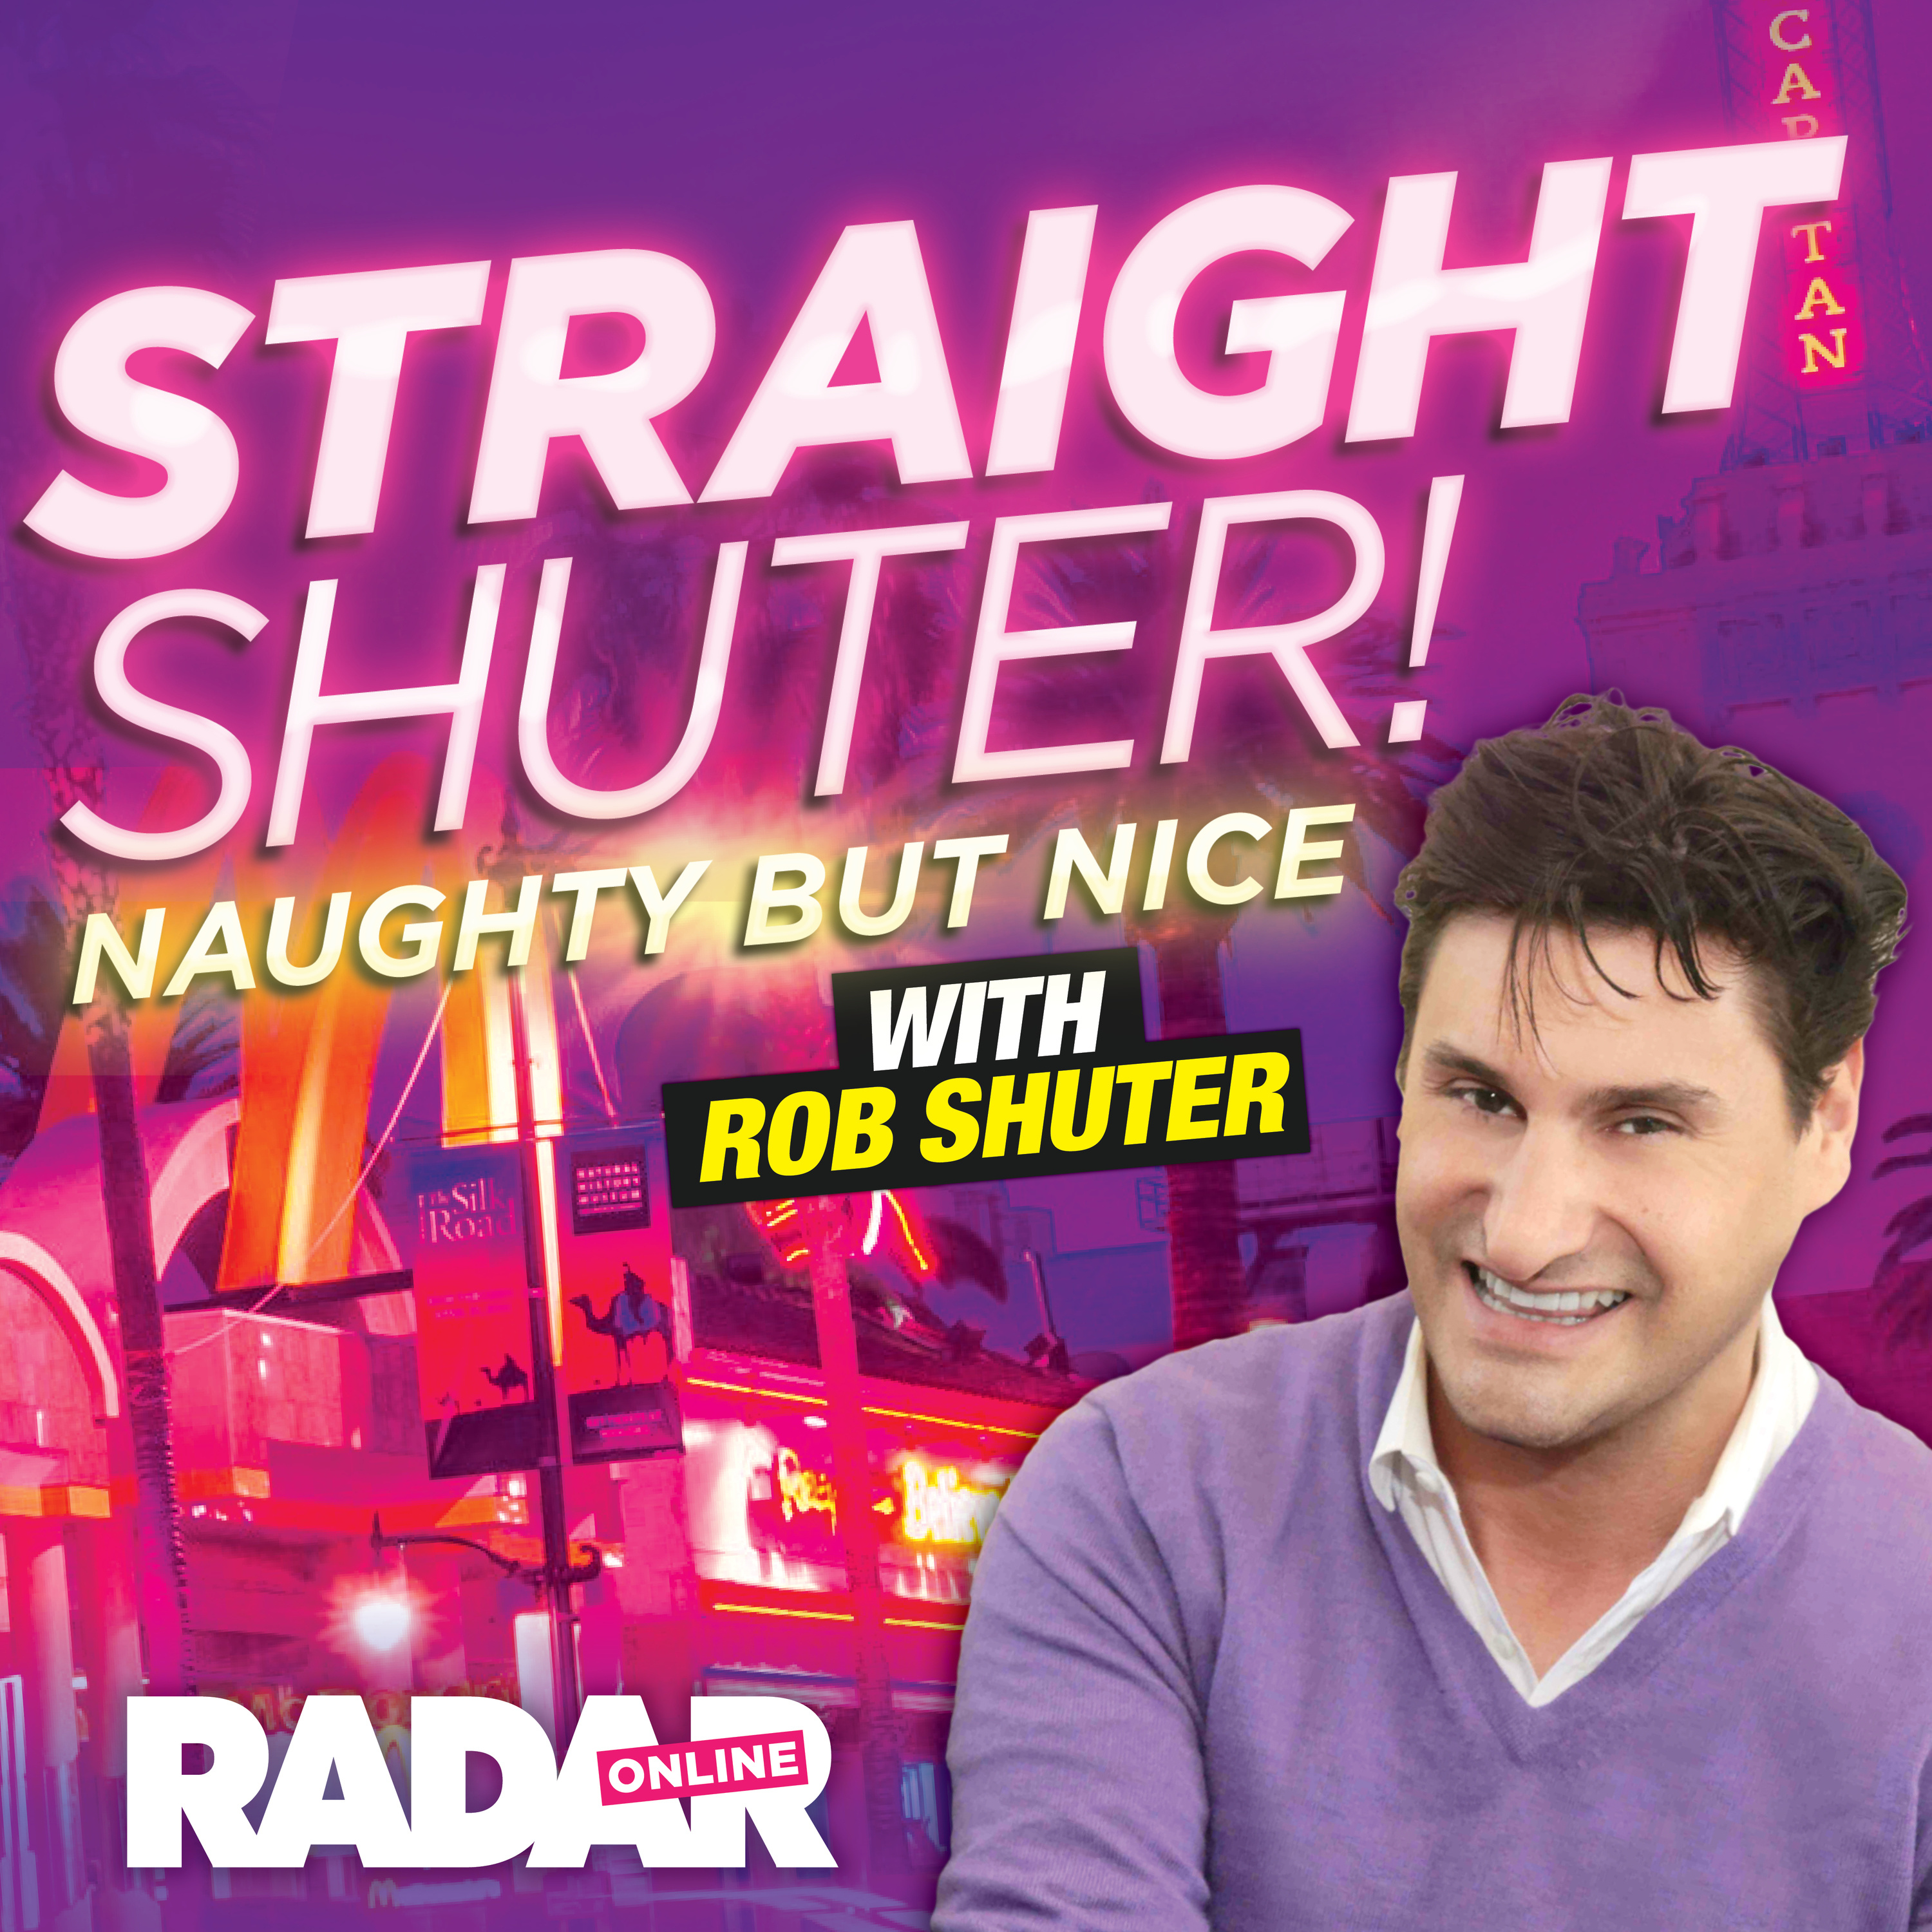 Straight Shuter - Naughty But Nice Celebrity Dish